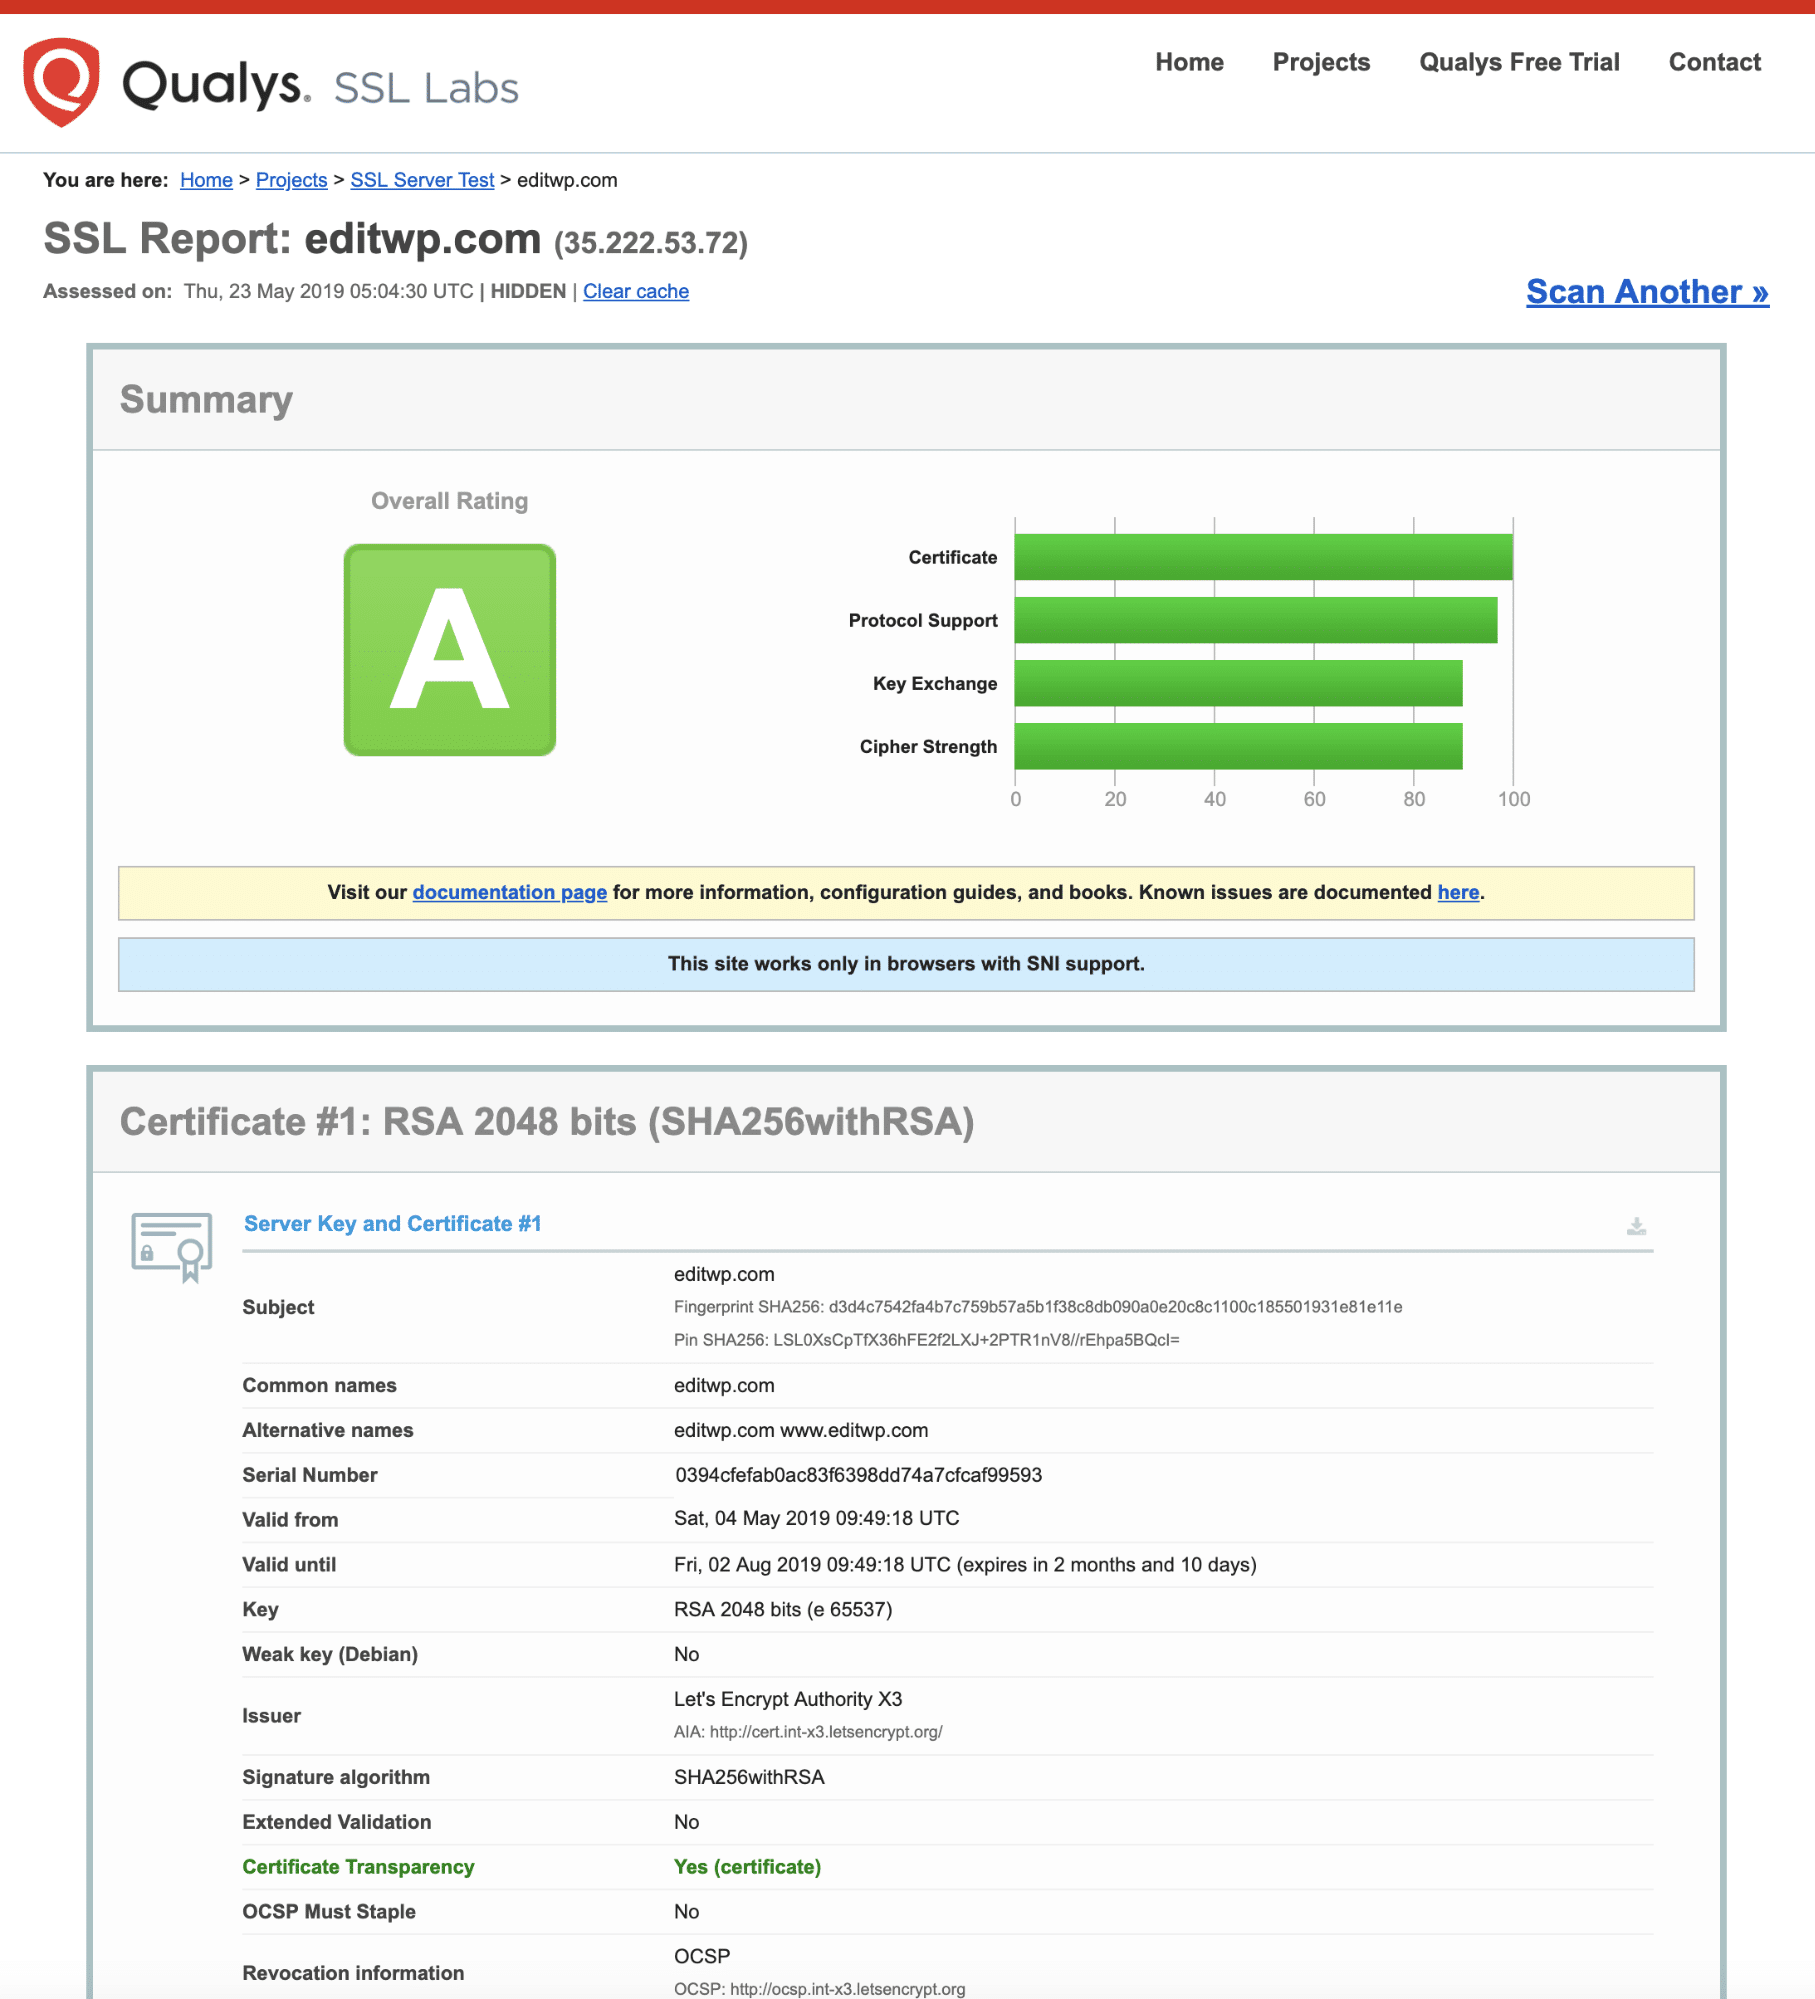 SSL Report Qualys